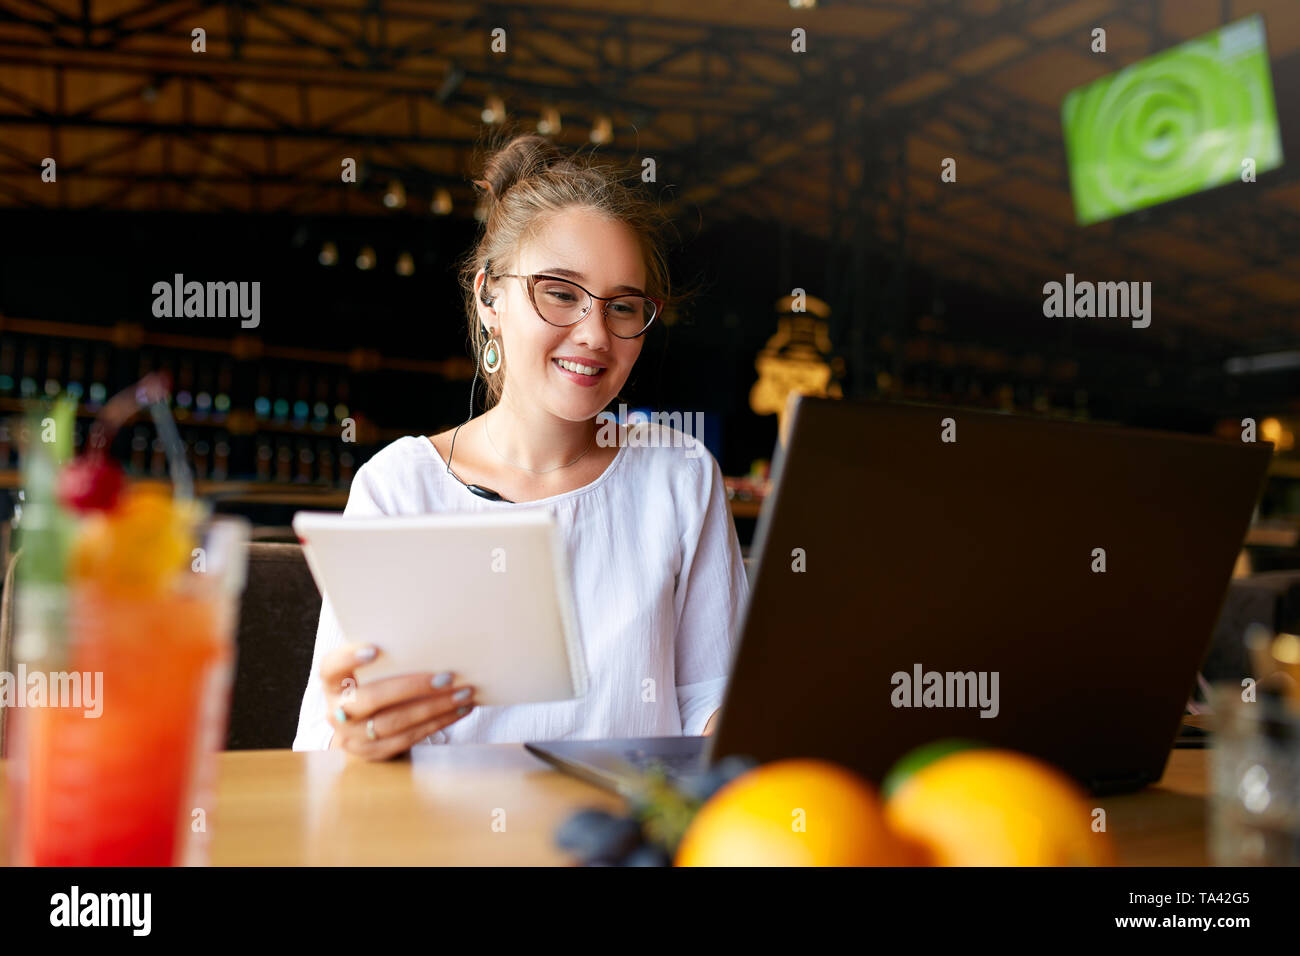 Businesswoman working remotely at cafe with headset and laptop. Mixed race female performing business negotiations on conference video chat. Telecommu Stock Photo